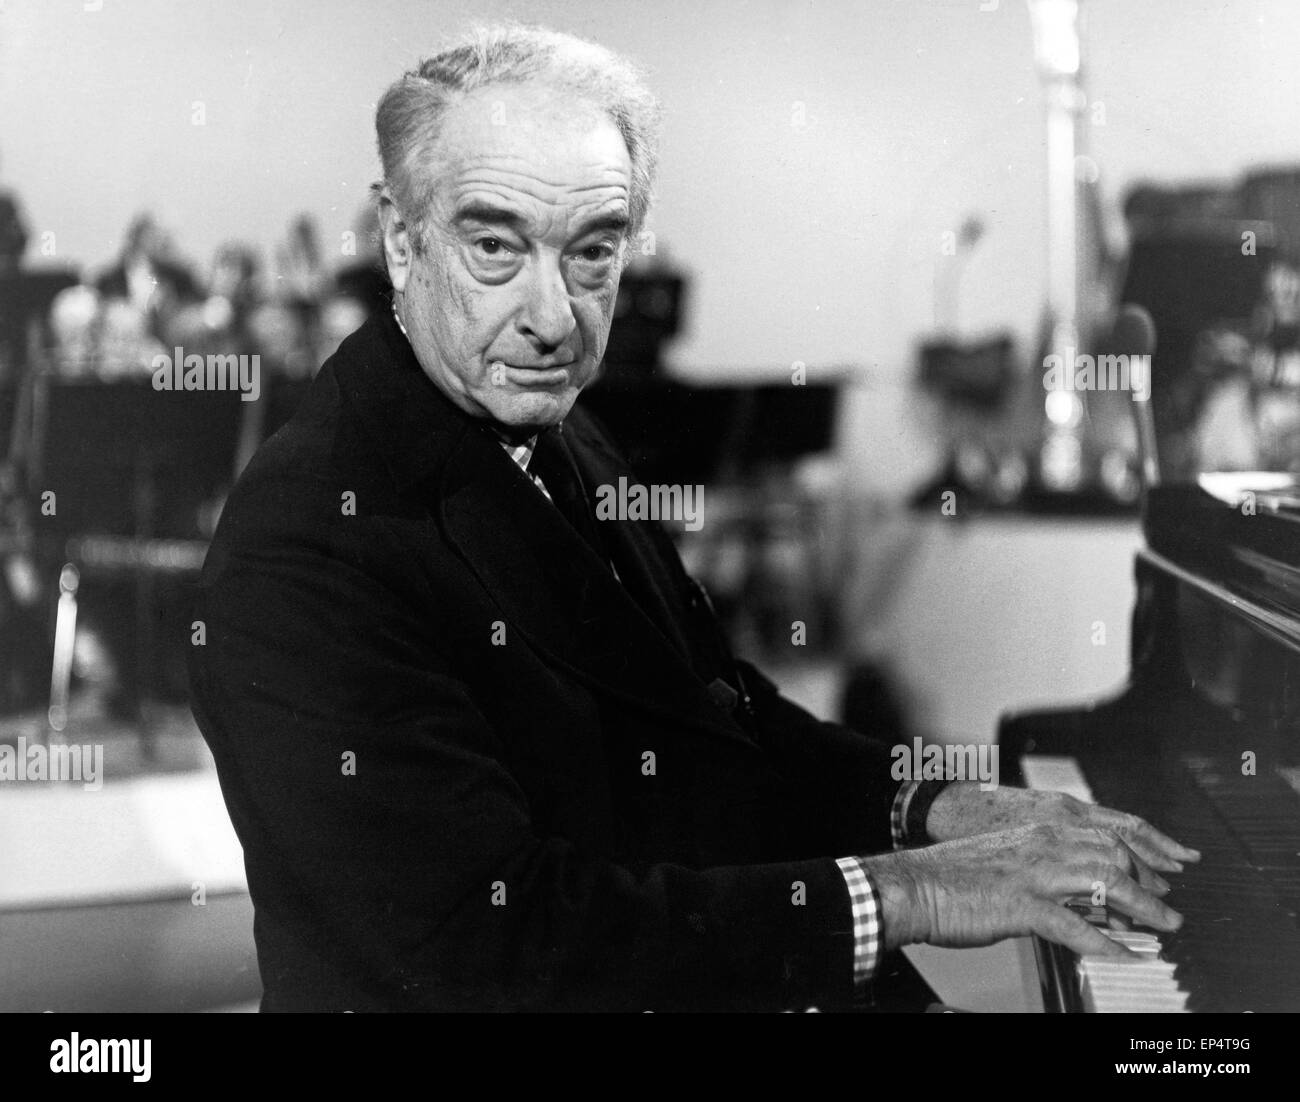 Victor Borge Stock Photos & Victor Borge Stock Images - Alamy